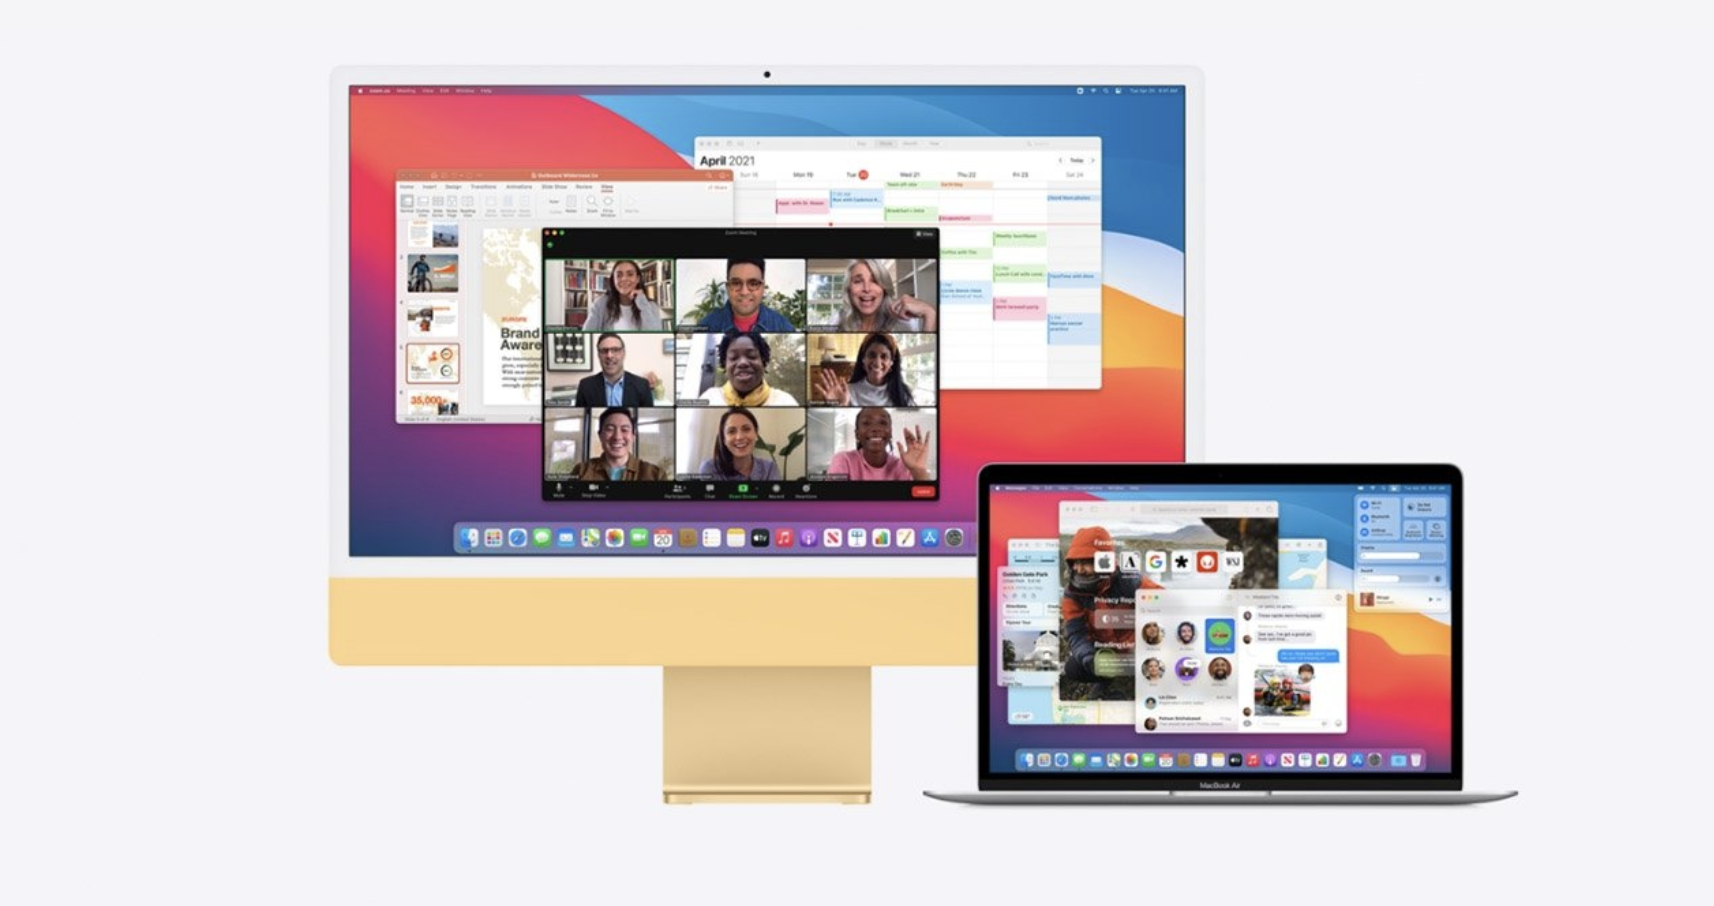 Apple aims to convert users with new 'Why Mac' page